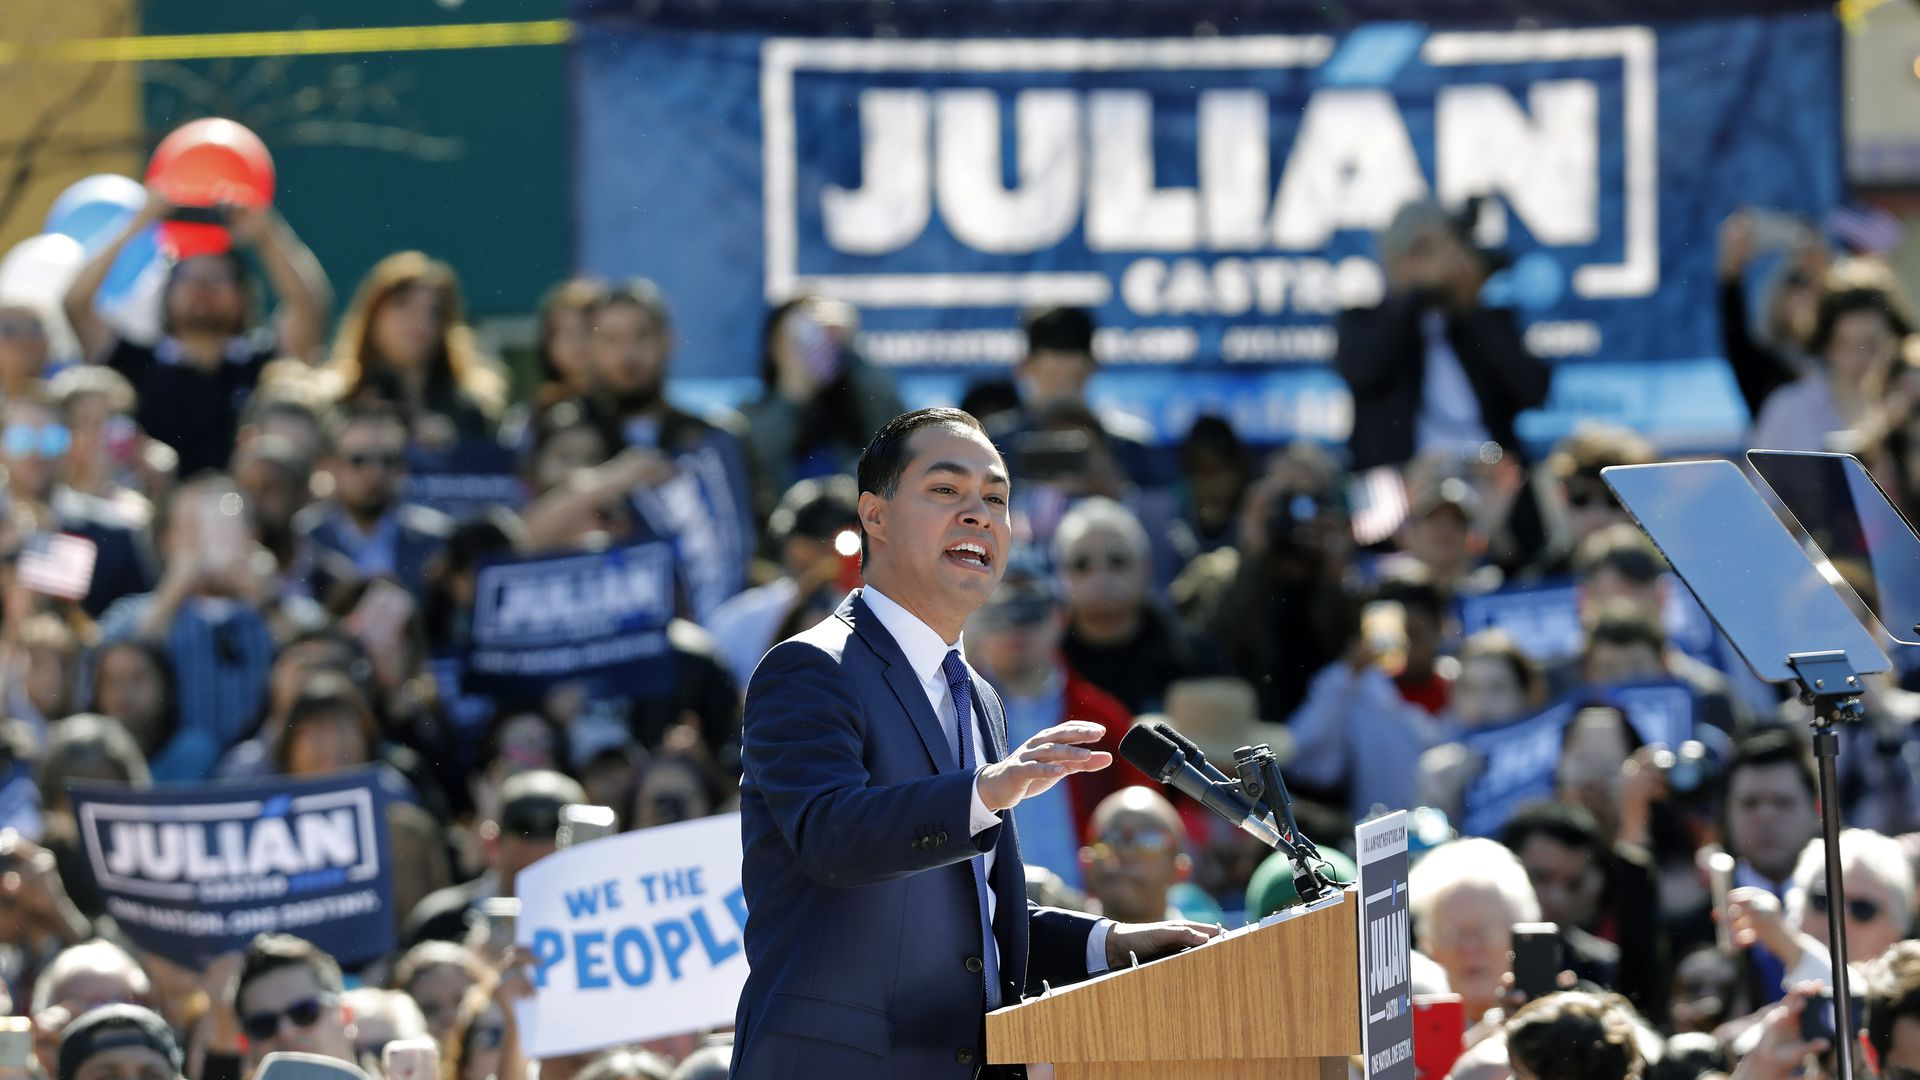 Julián Castro speaks from behind a podium at a campaign event